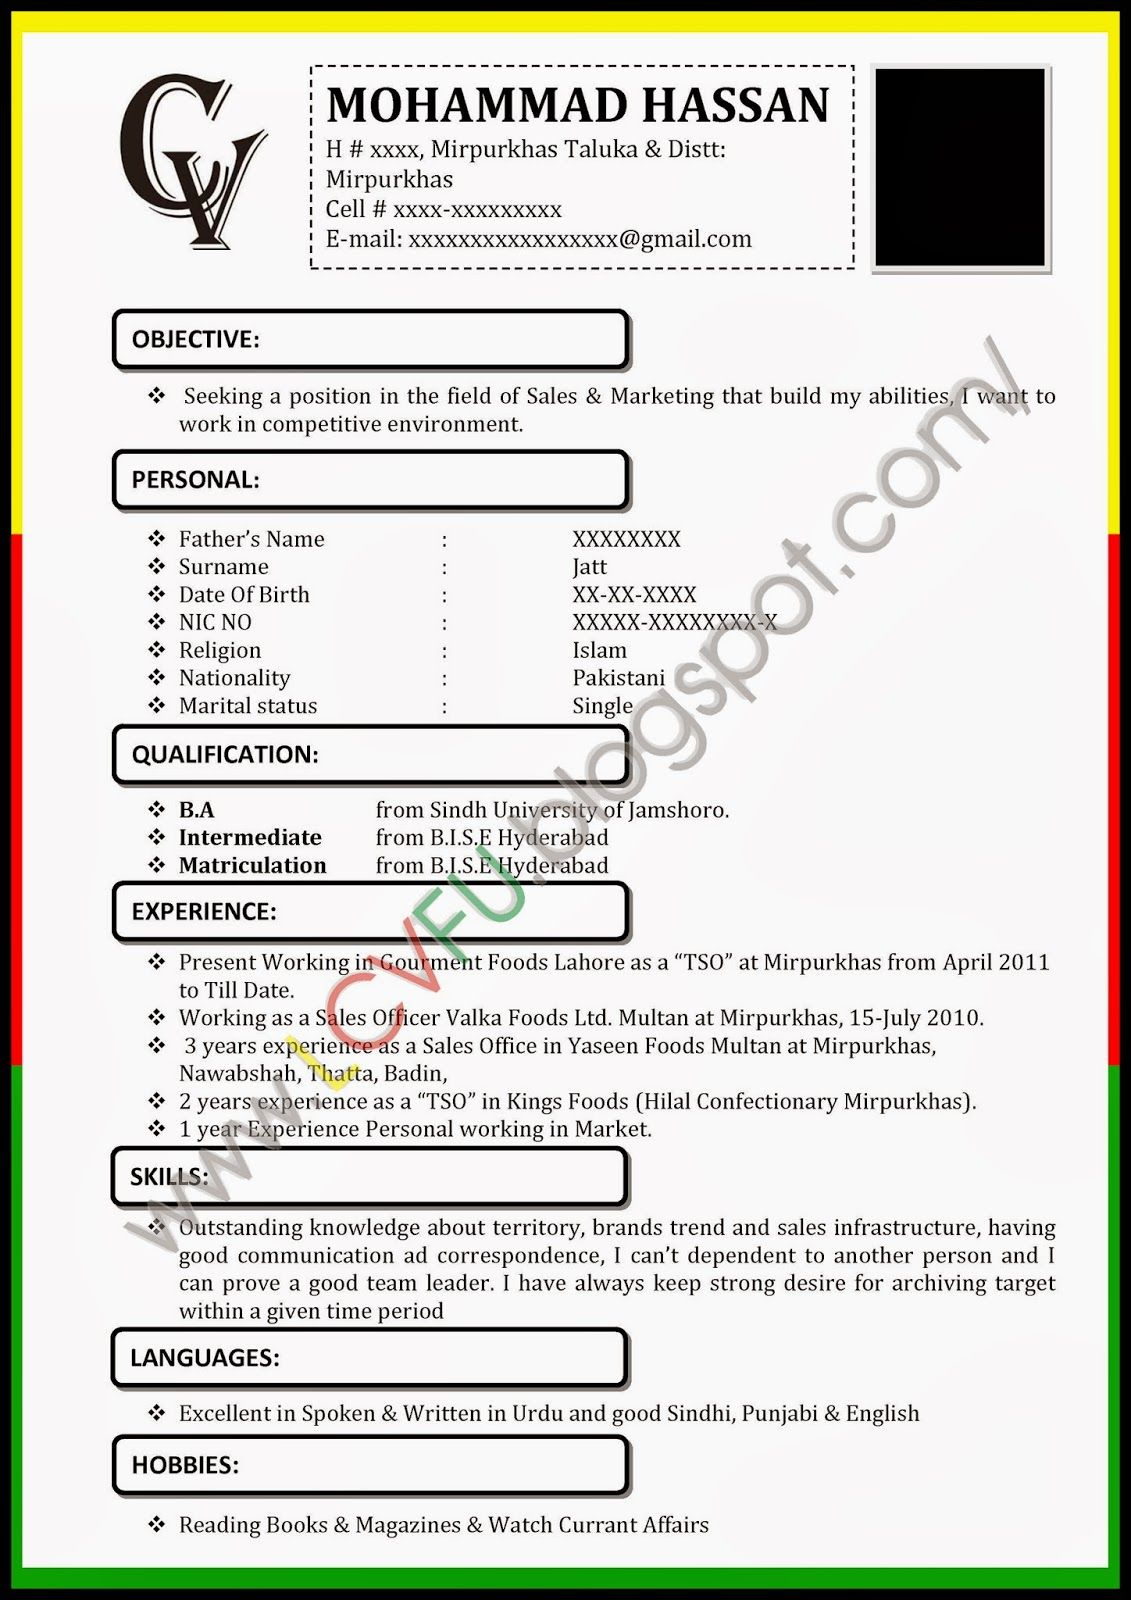 Curriculum Vitae New Zealand Format Cv format, Resume